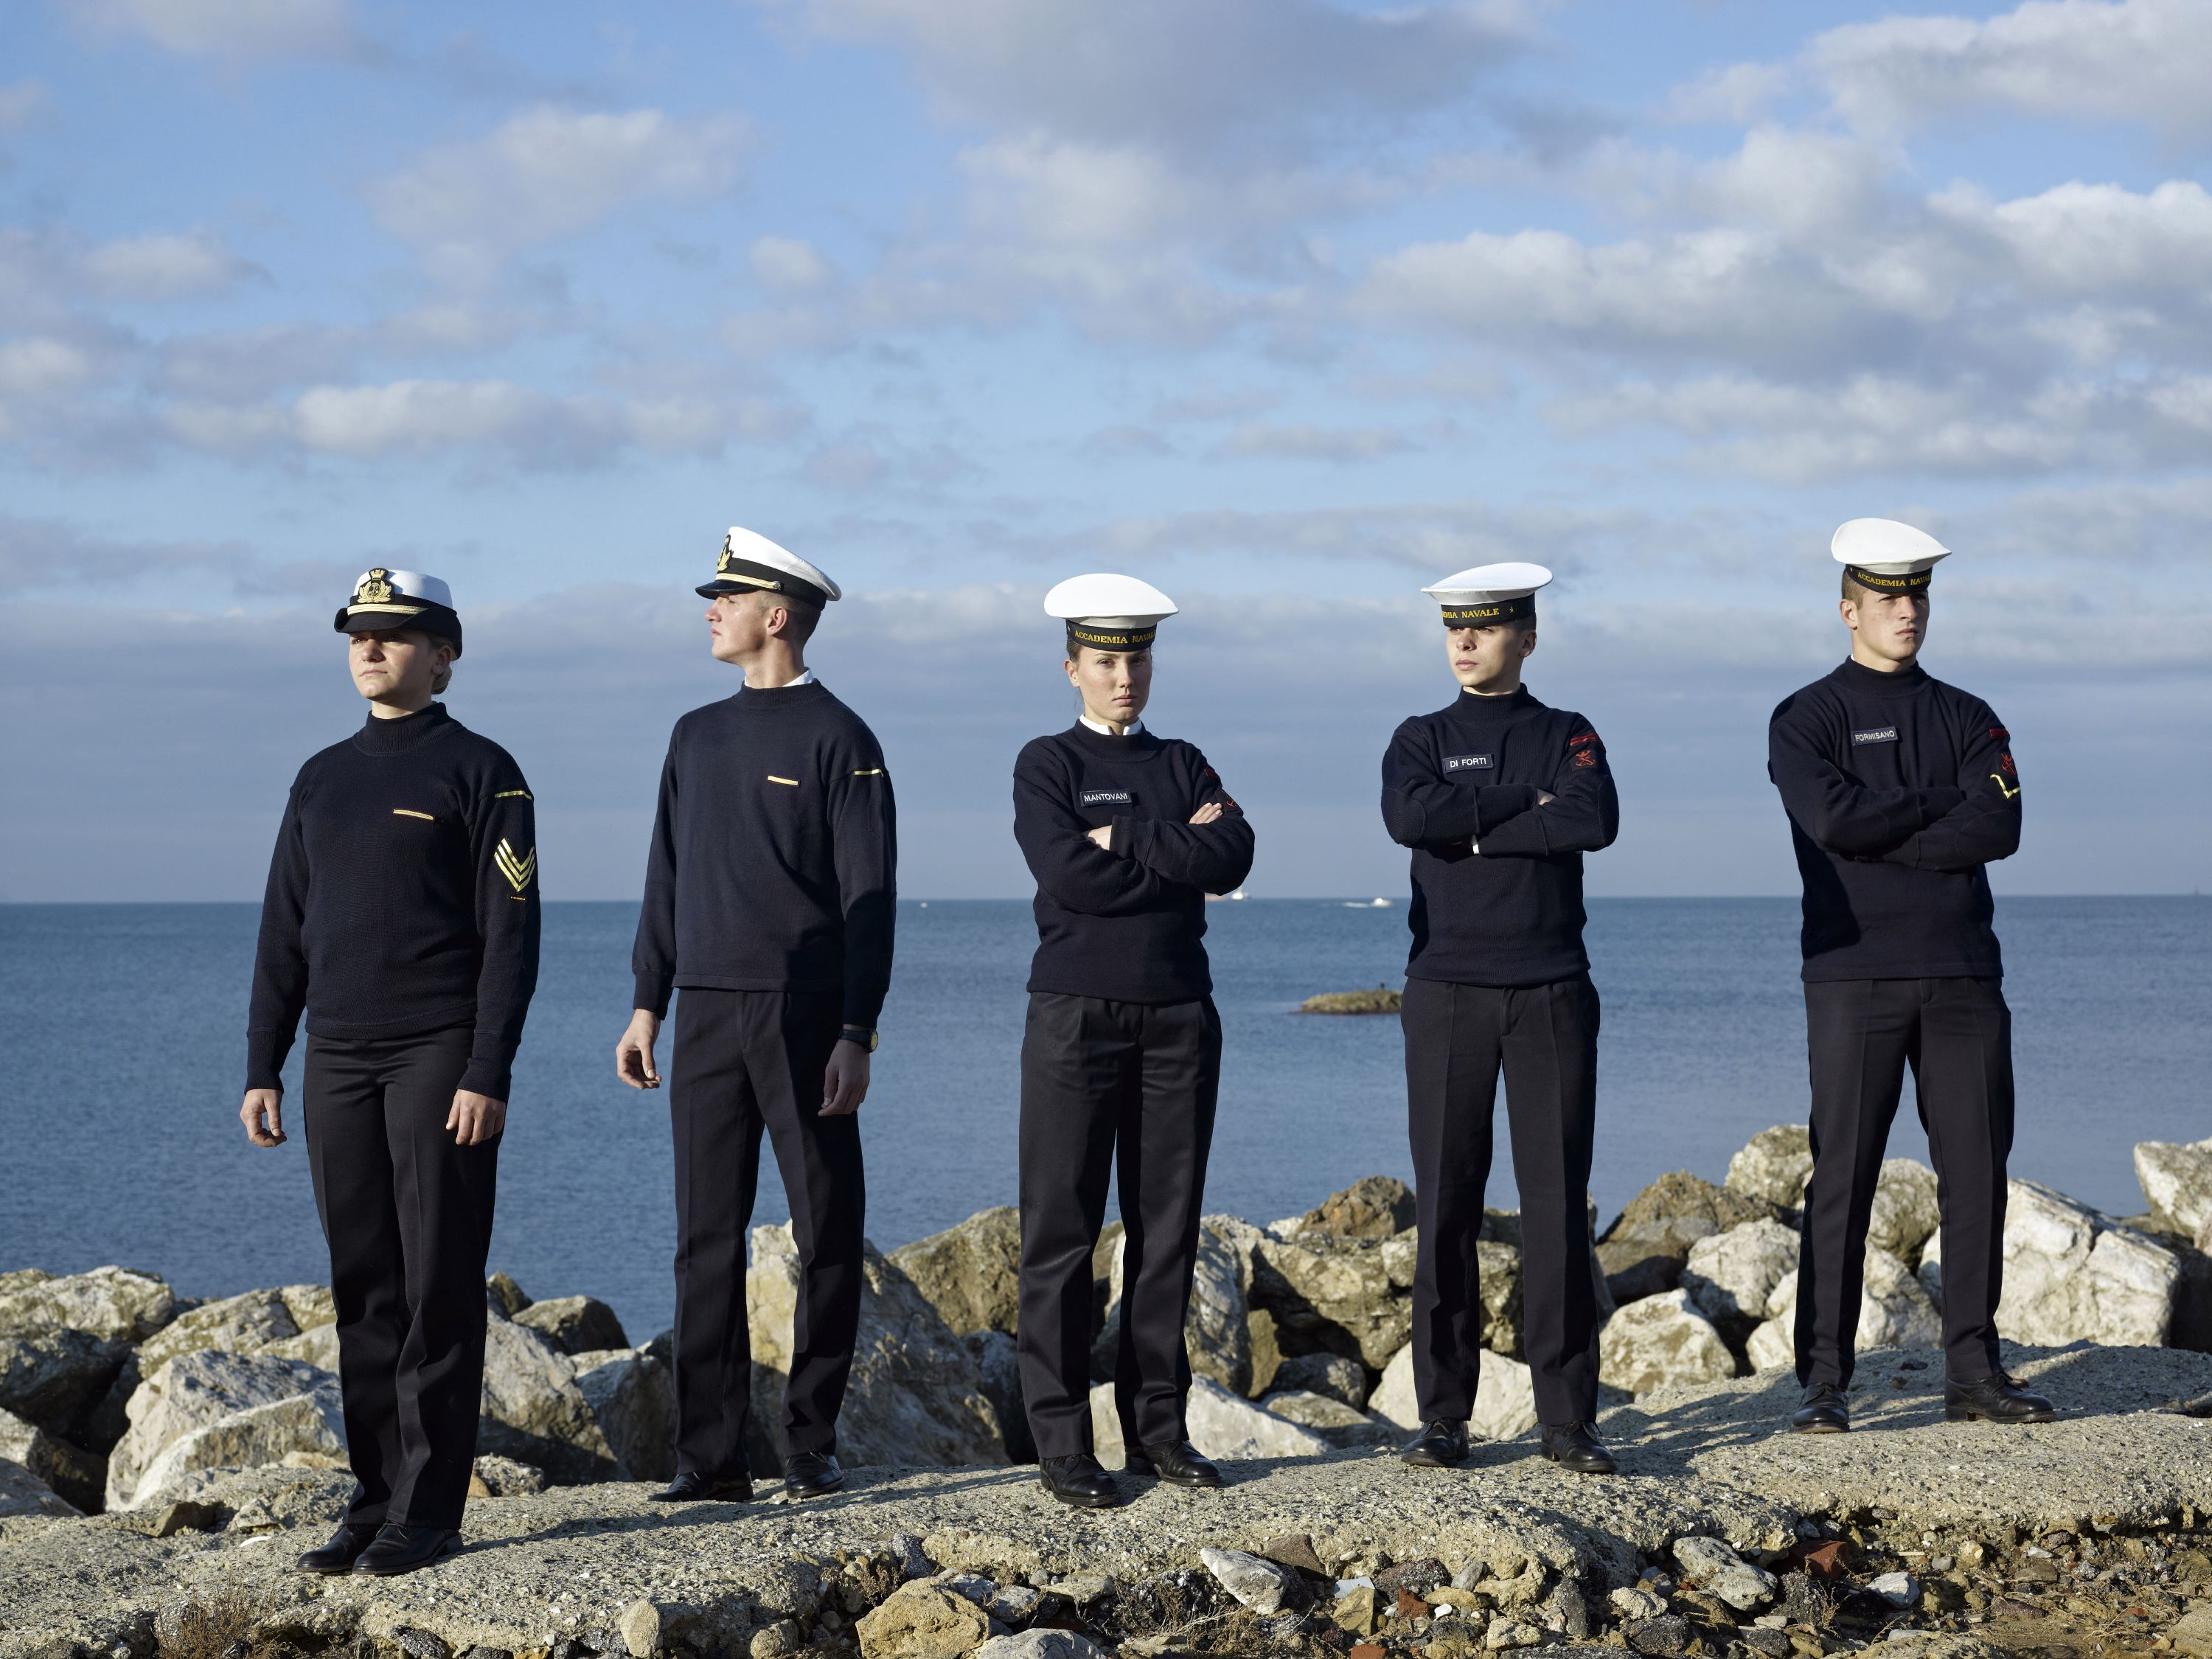 Cadets in the seafront, Italian Naval Academy, Livorno, Italy, Nov. 21, 2012.